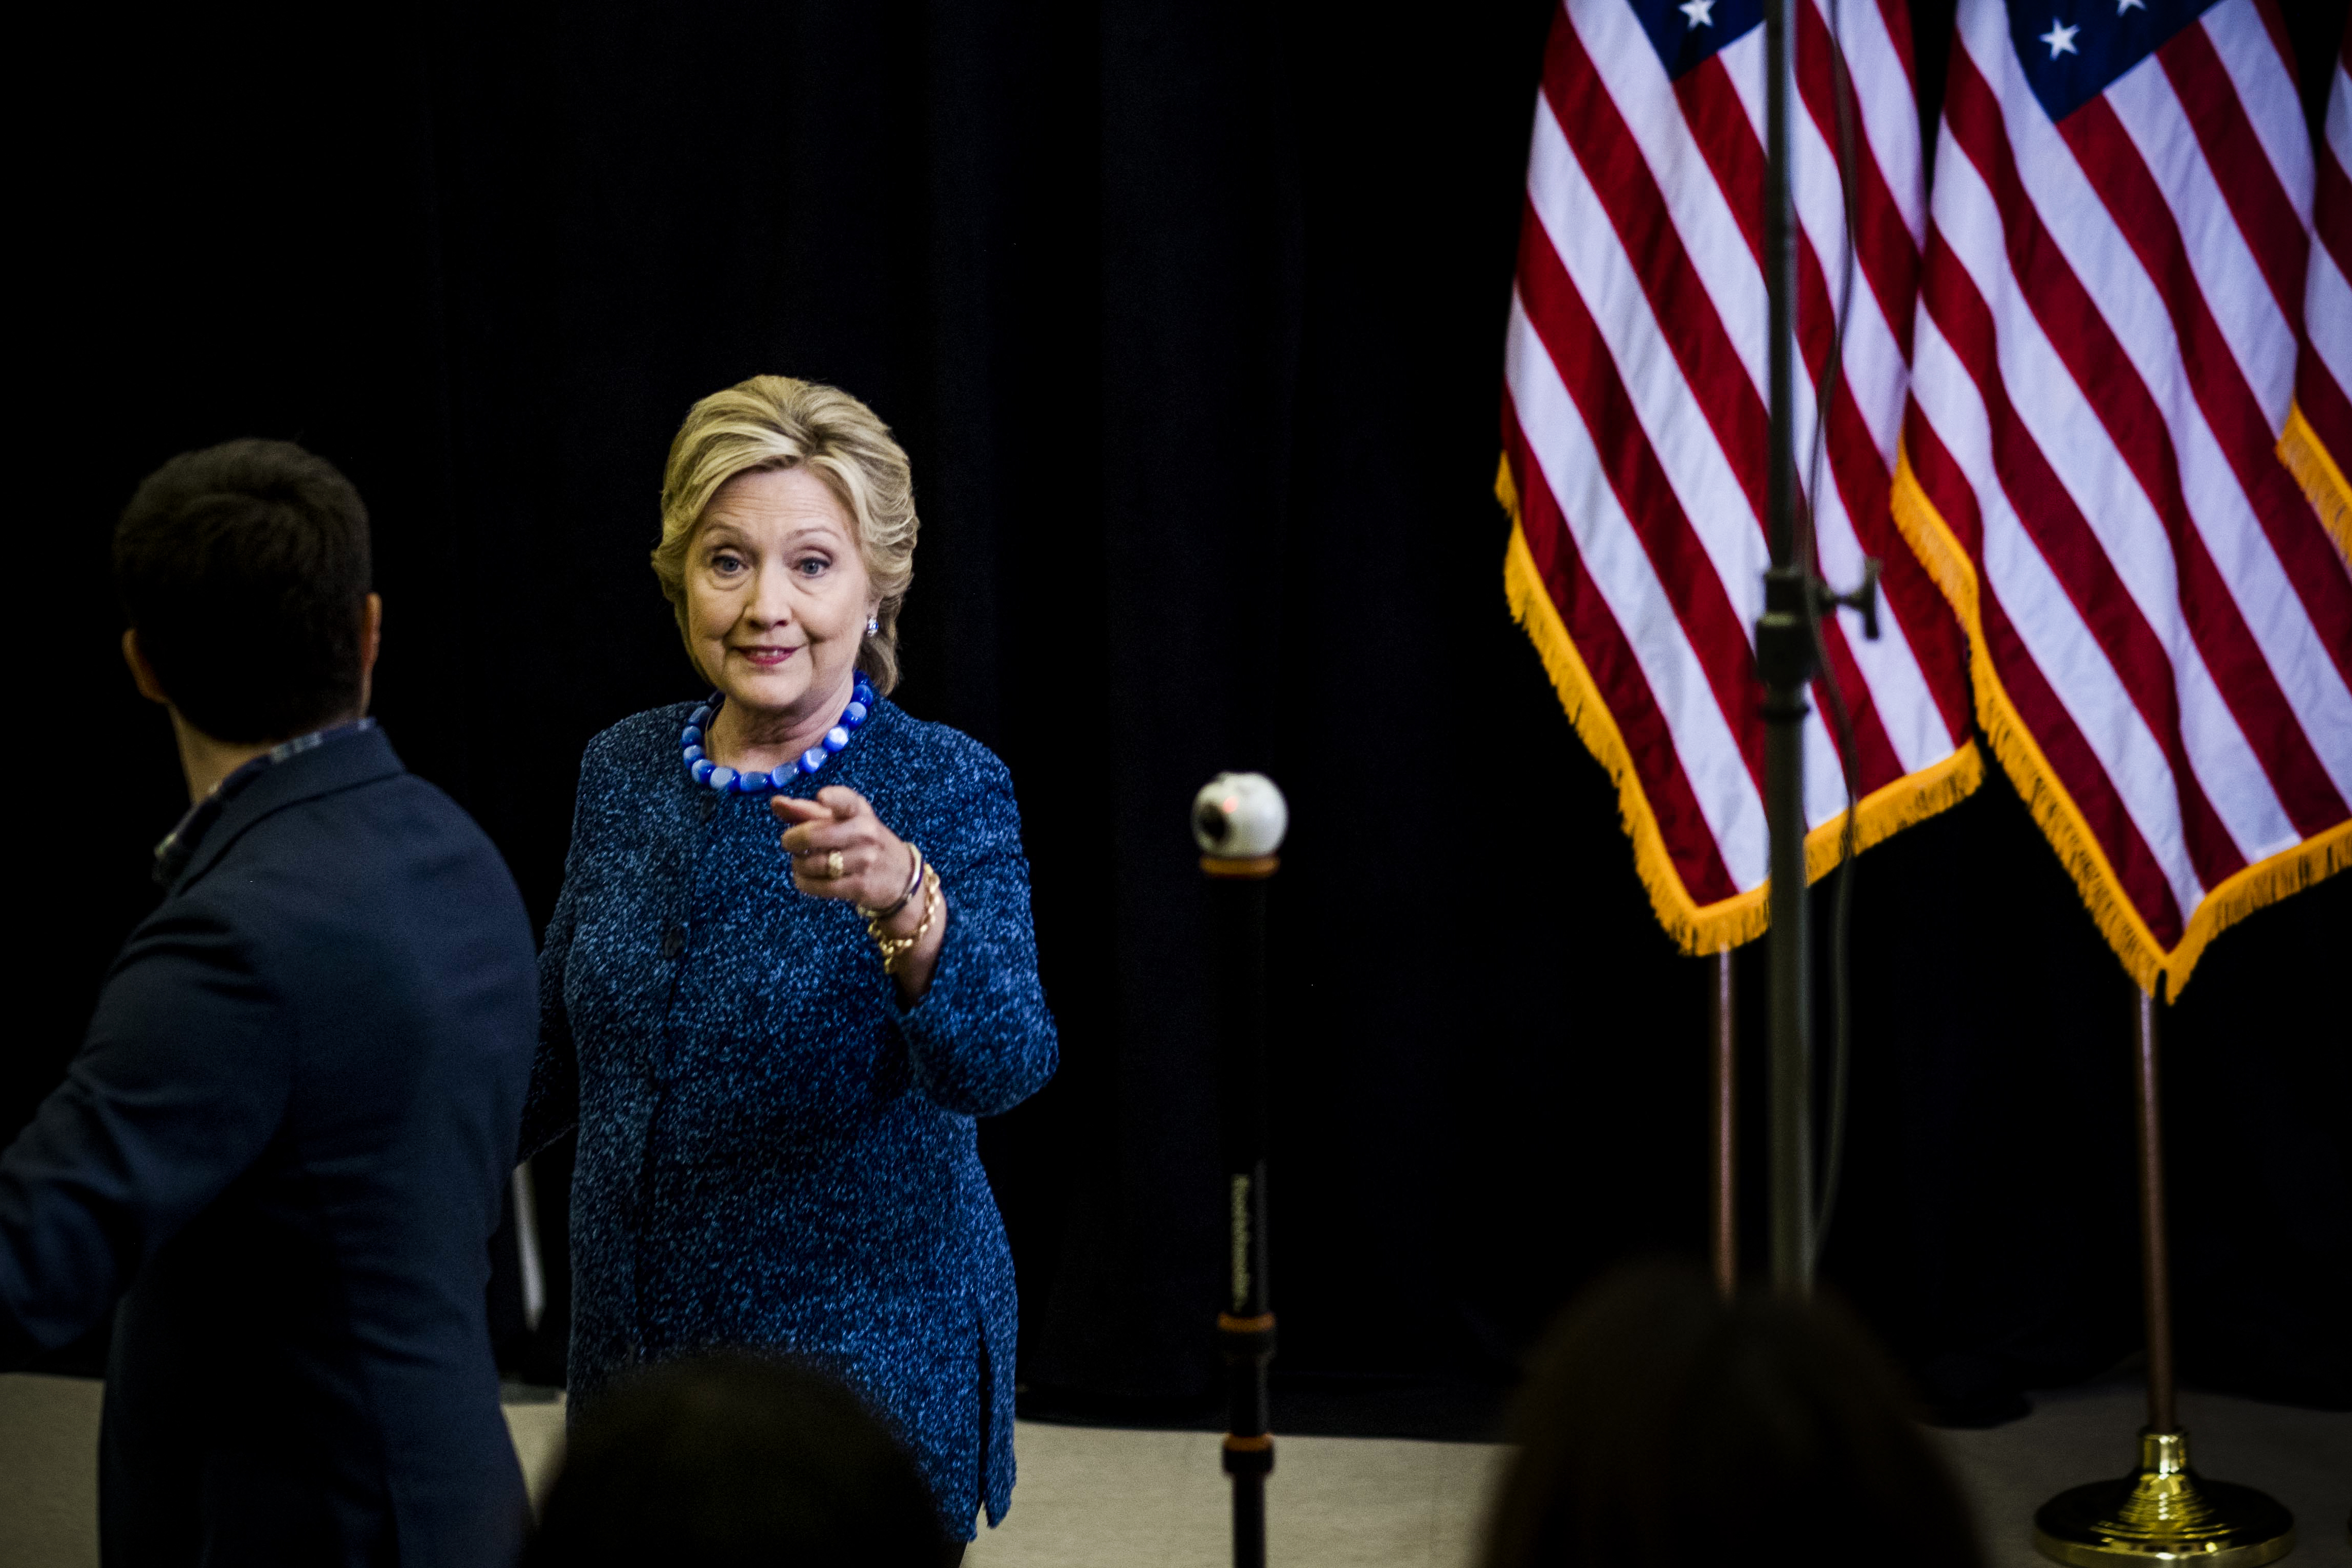 The embarrassing epilogue to the media's obsession with Hillary Clinton's emails